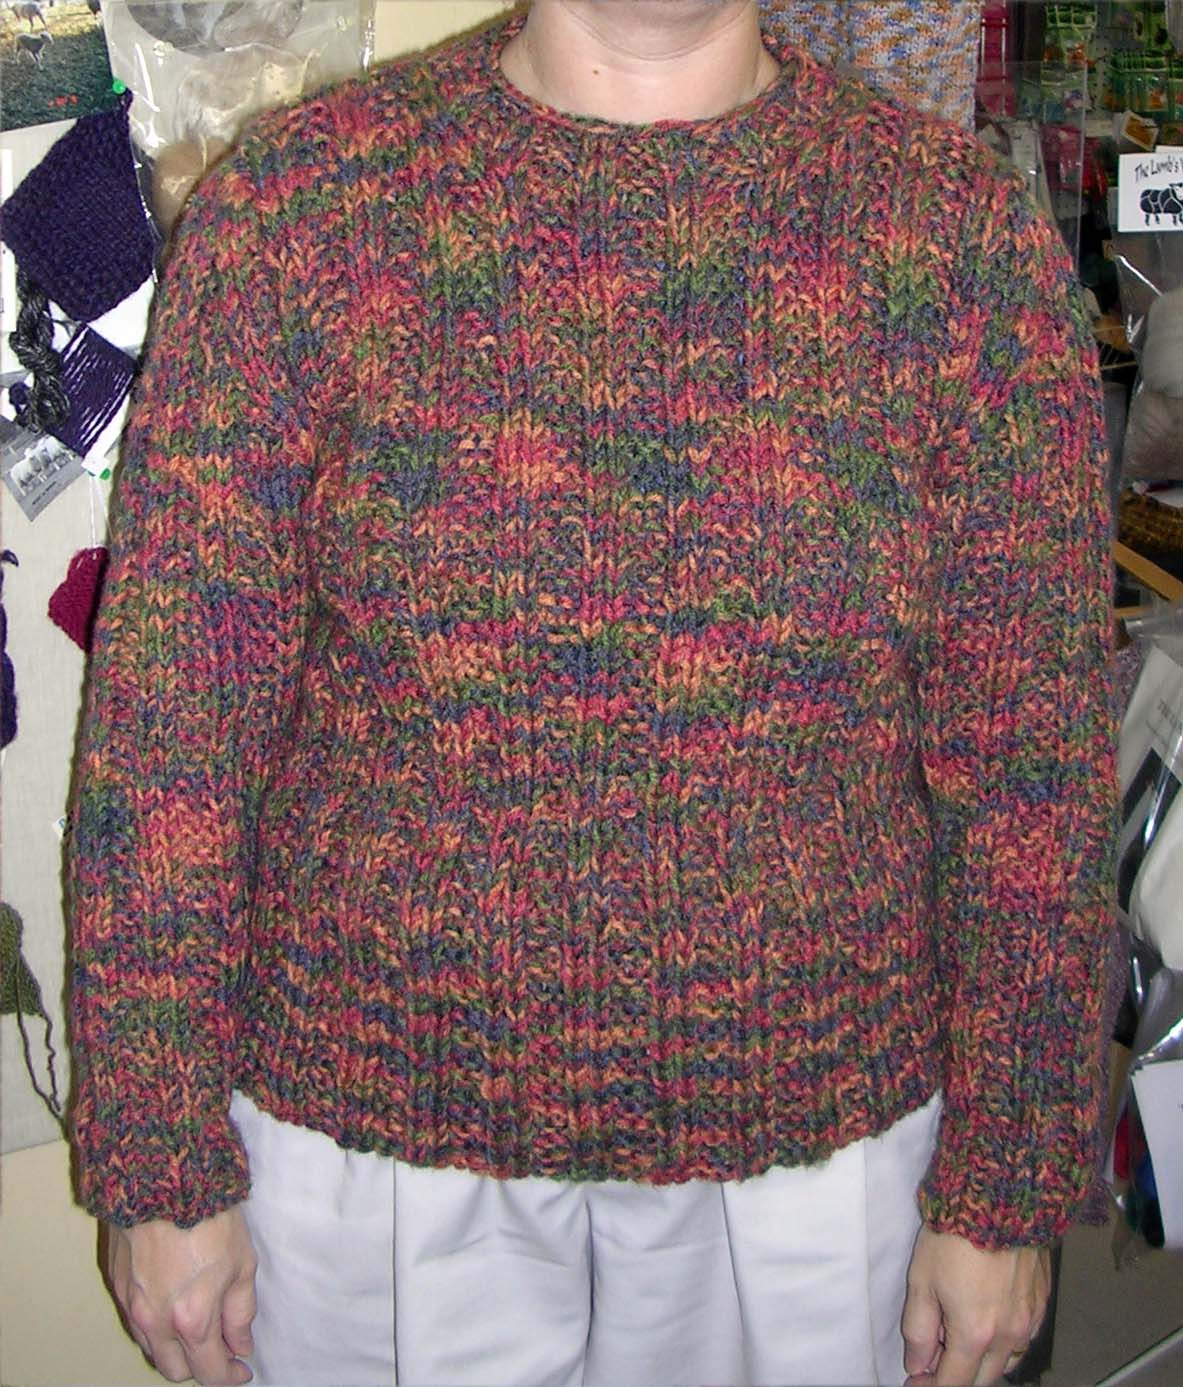 Susan's Second Project